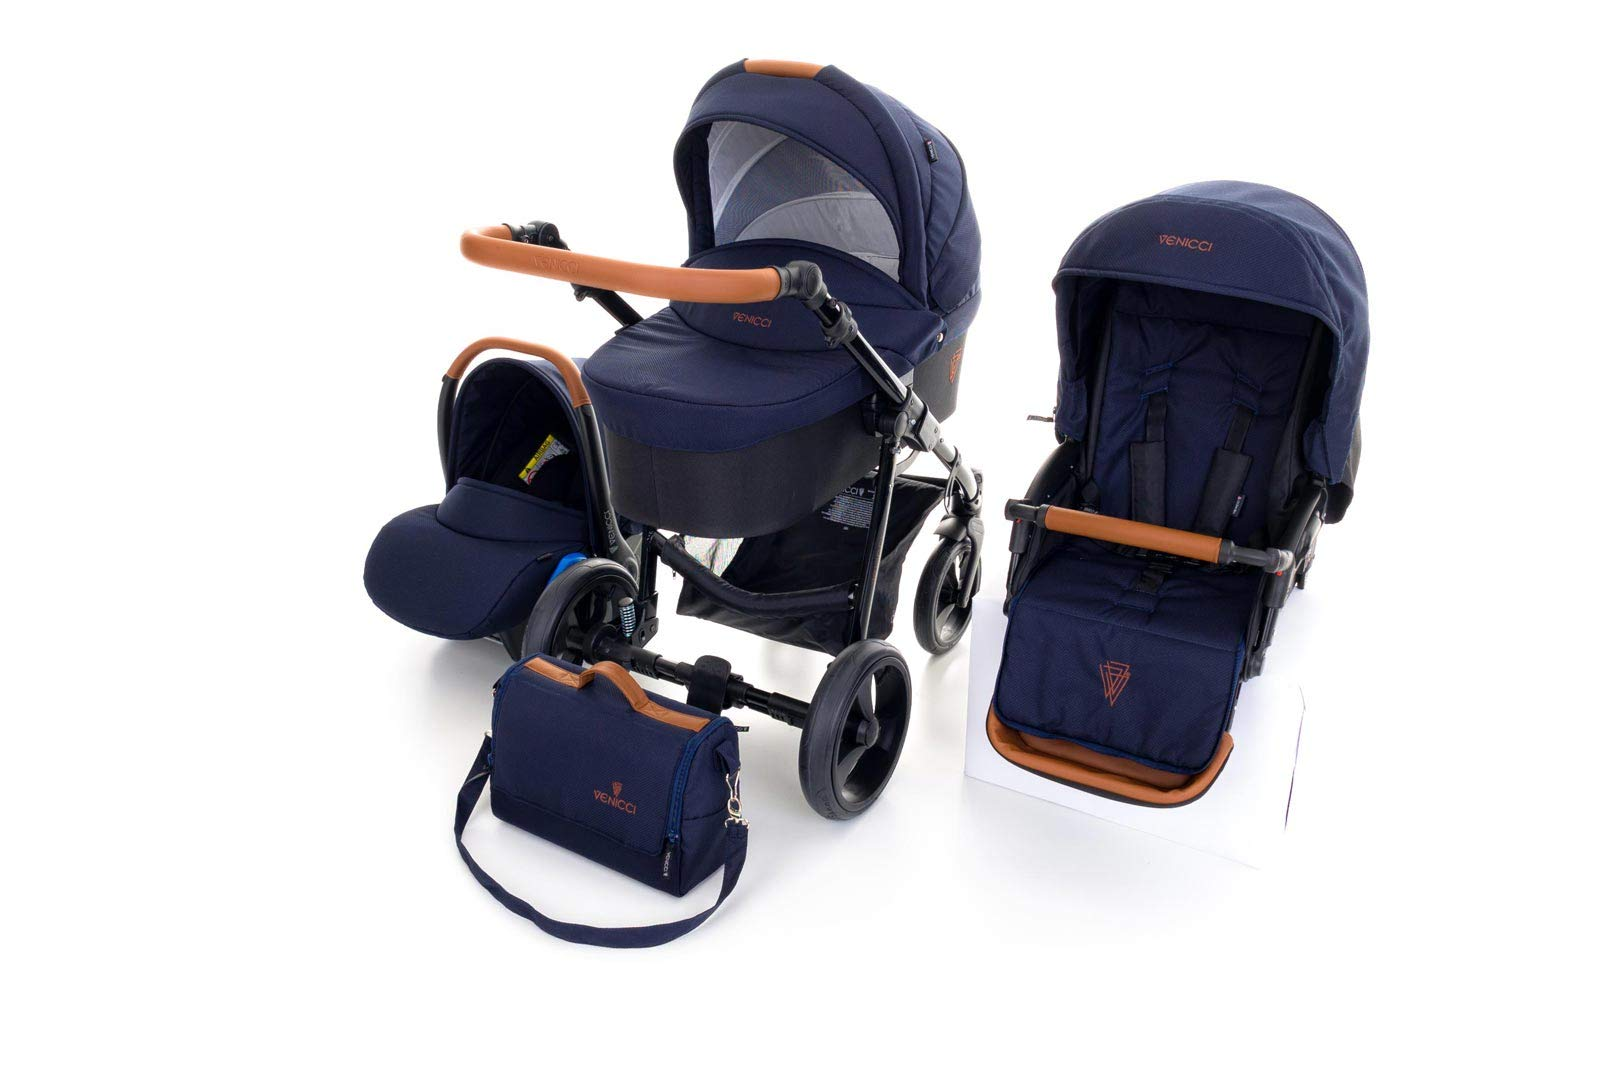 Venicci Gusto 3-in-1 Travel System - Navy - with Carrycot + Car Seat + Changing Bag + Footmuff + Raincover + Mosquito Net + 5-Point Harness and UV 50+ Fabric + Car Seat Adapters + Cup Holder  3 in 1 Travel System with included Group 0+ Car Seat Suitable for your baby from birth onwards 5-point harness to enhance the safety of your child 6